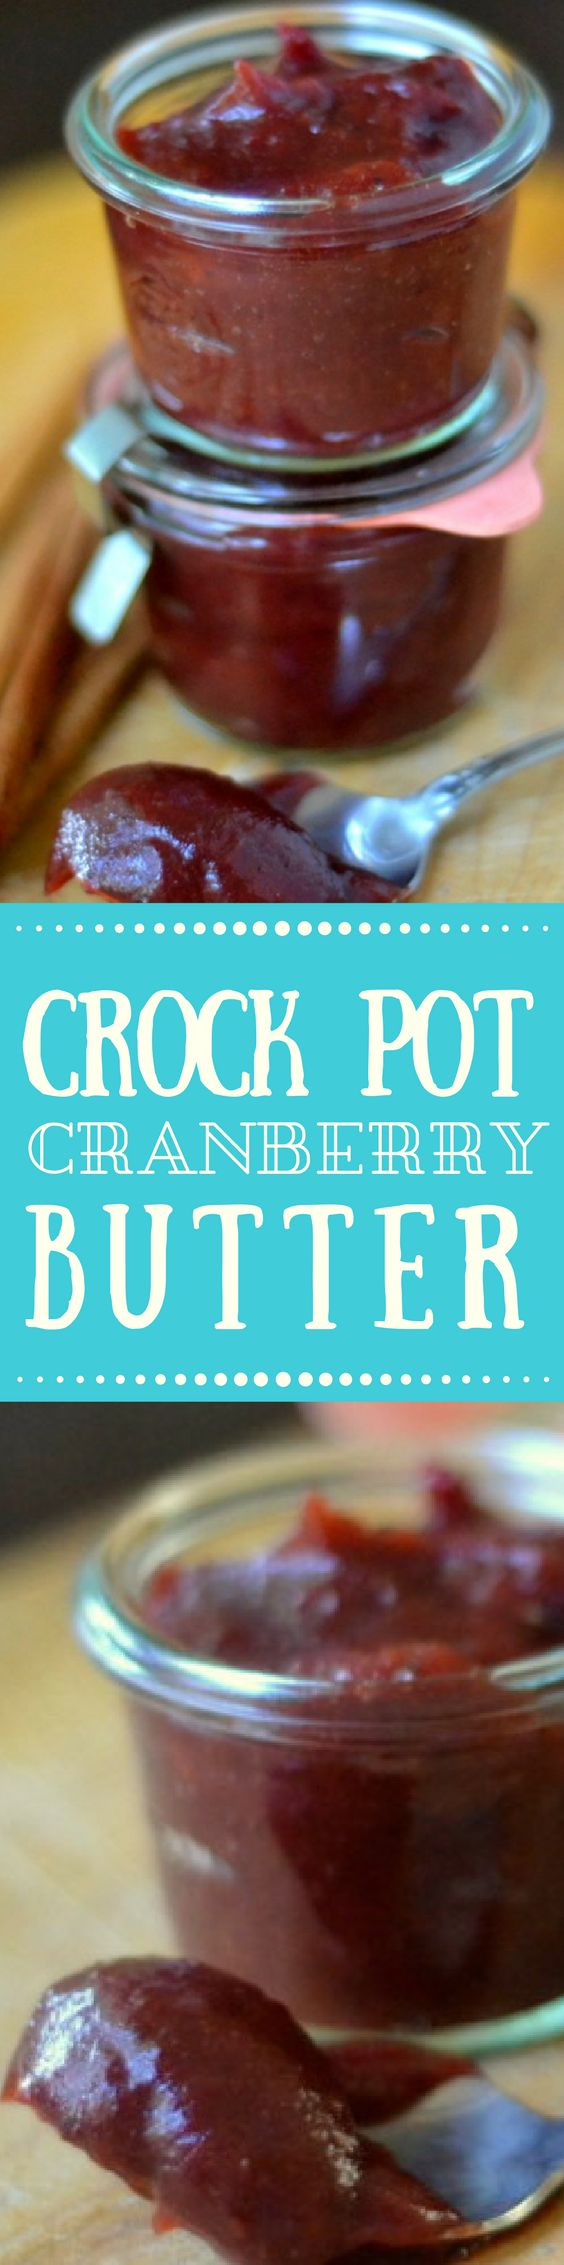 Crock Pot Cranberry Butter is a silky, tangy fruit spread that goes on everything from biscuits to turkey sandwiches! ~ theviewfromgreatisland.com